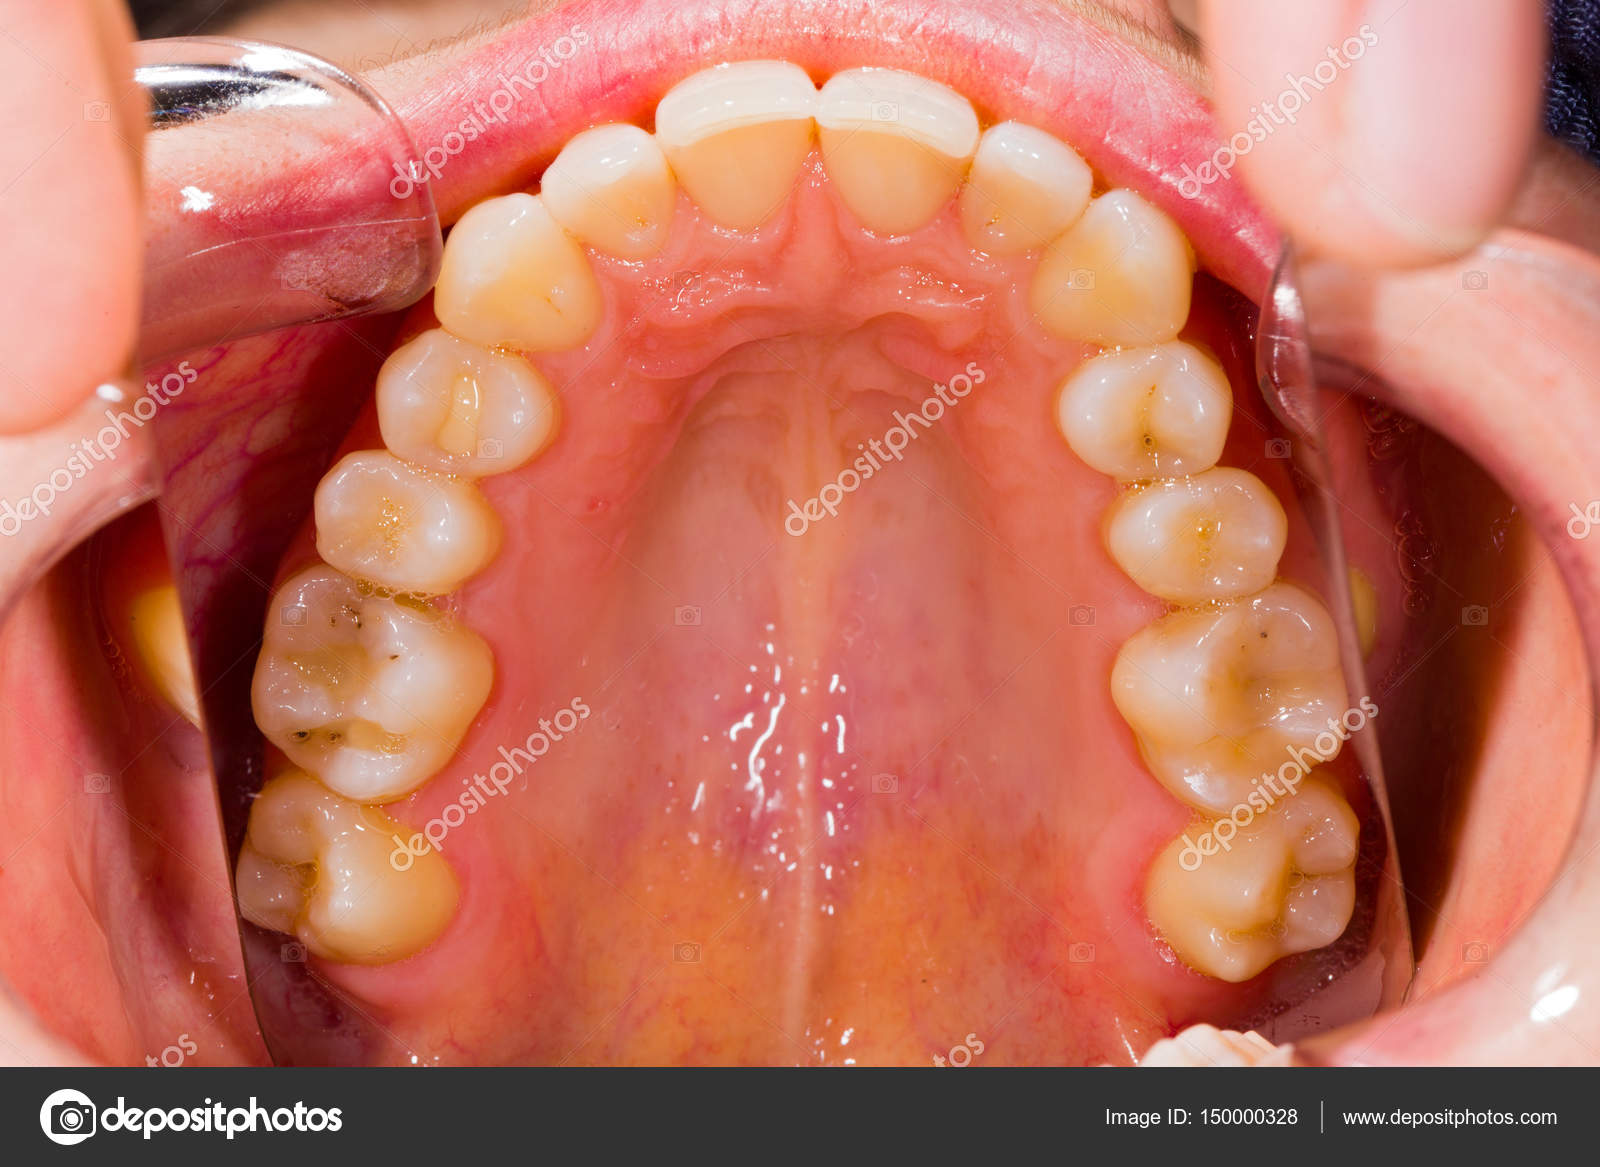 una anatomía Dental — Foto de stock © Lighthunter #150000328